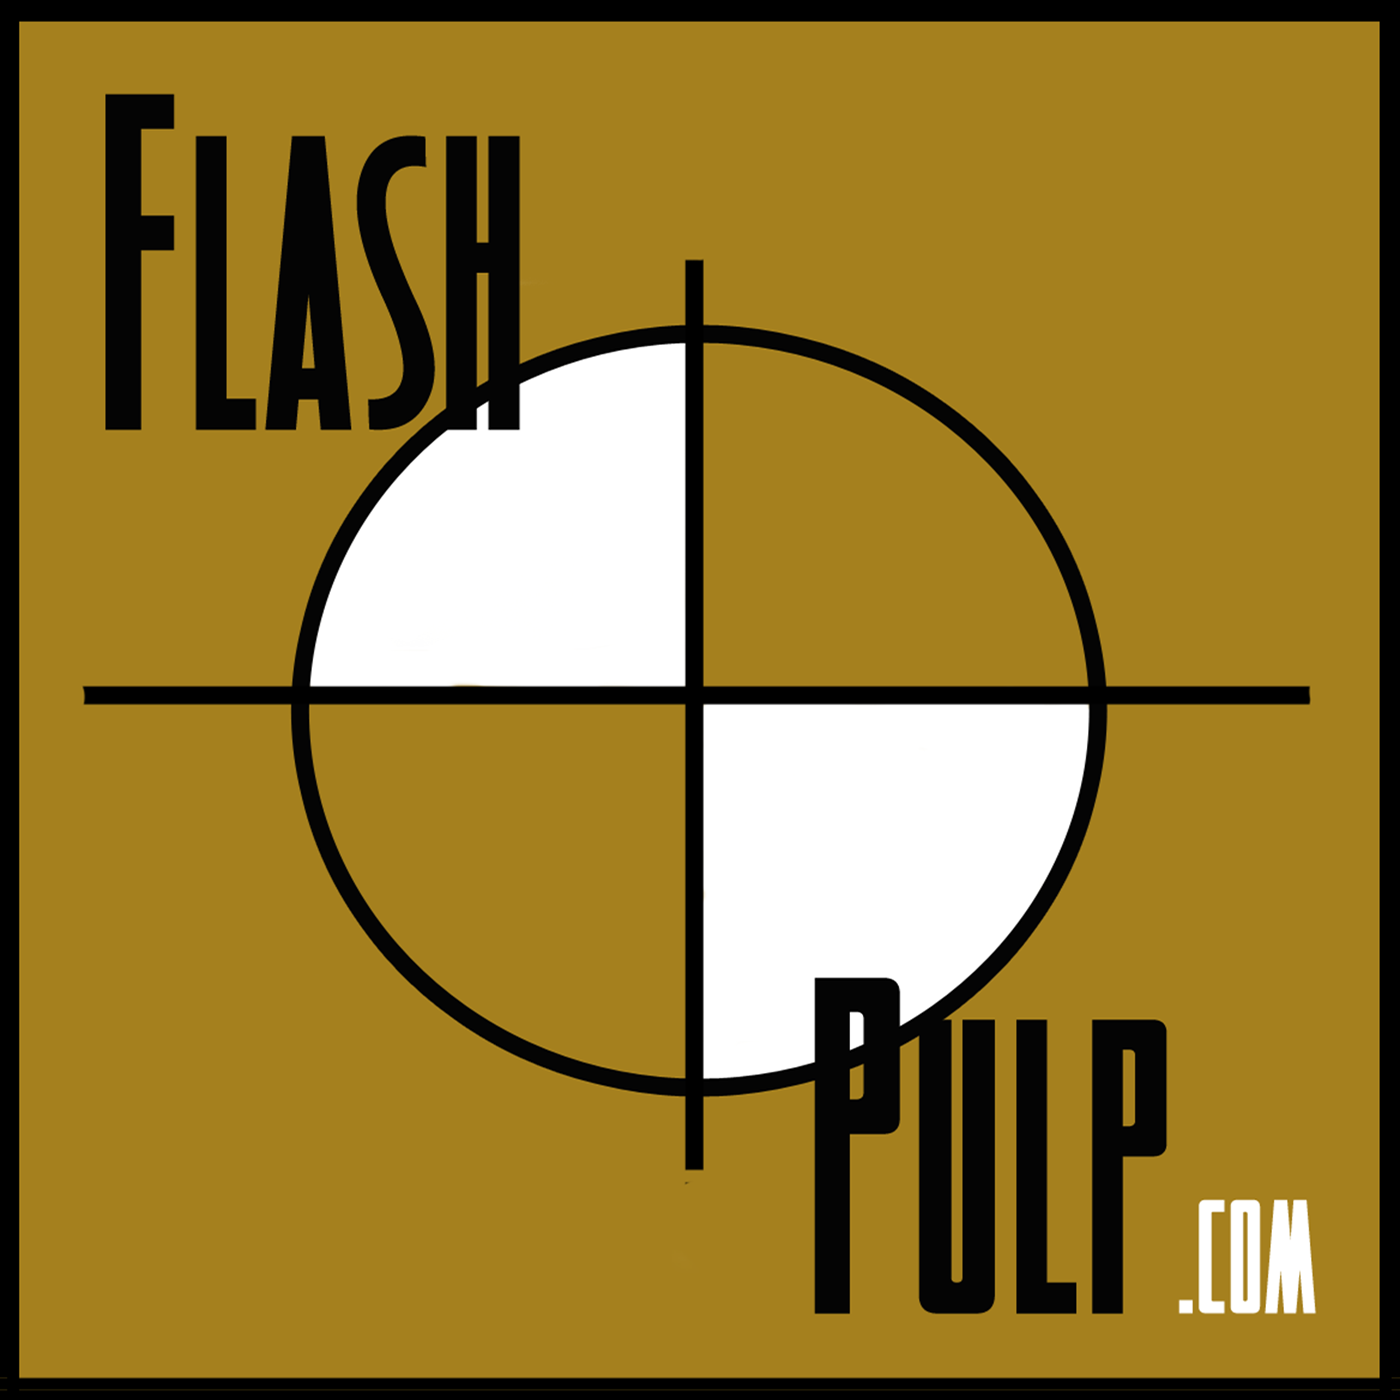 Flash Pulp - The Skinner Co. Network Podcast